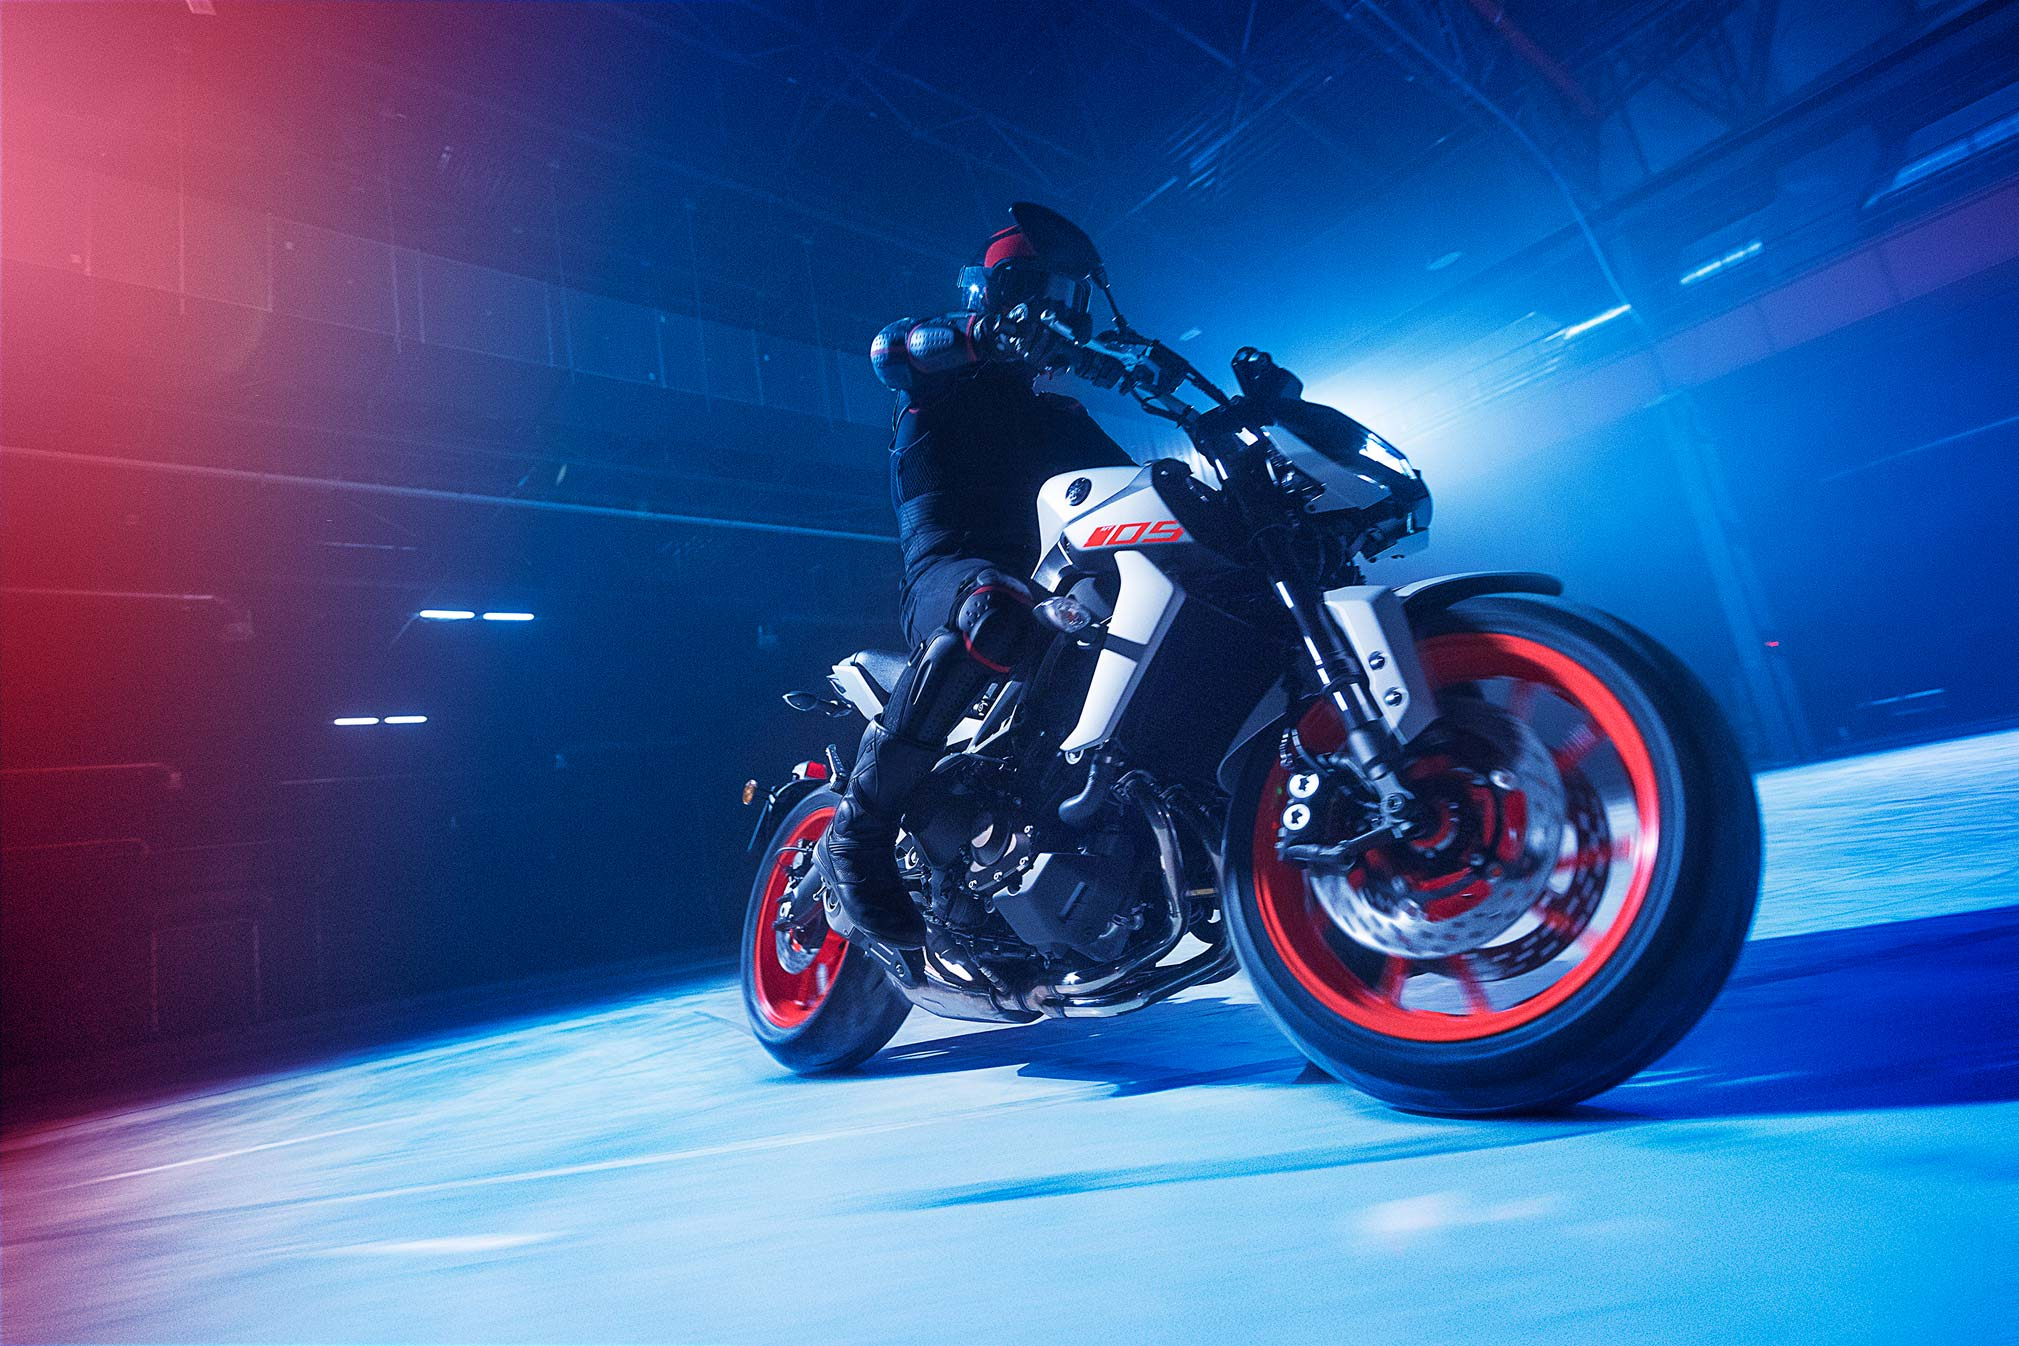 2019 Yamaha MT-09 Guide • Total Motorcycle